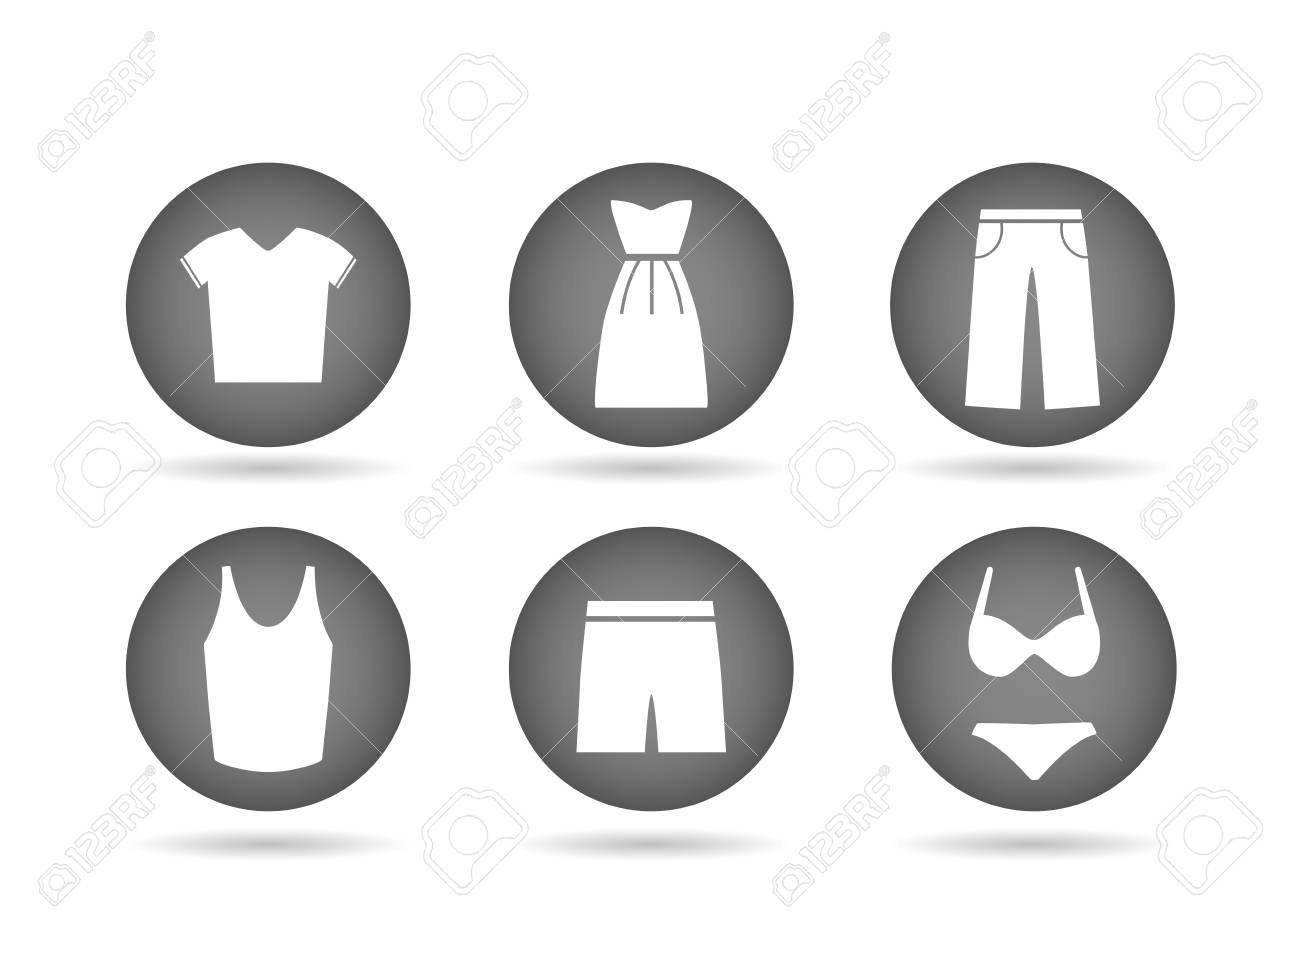 Illustration of clothing icon buttons isolated on a white background. - 97016081